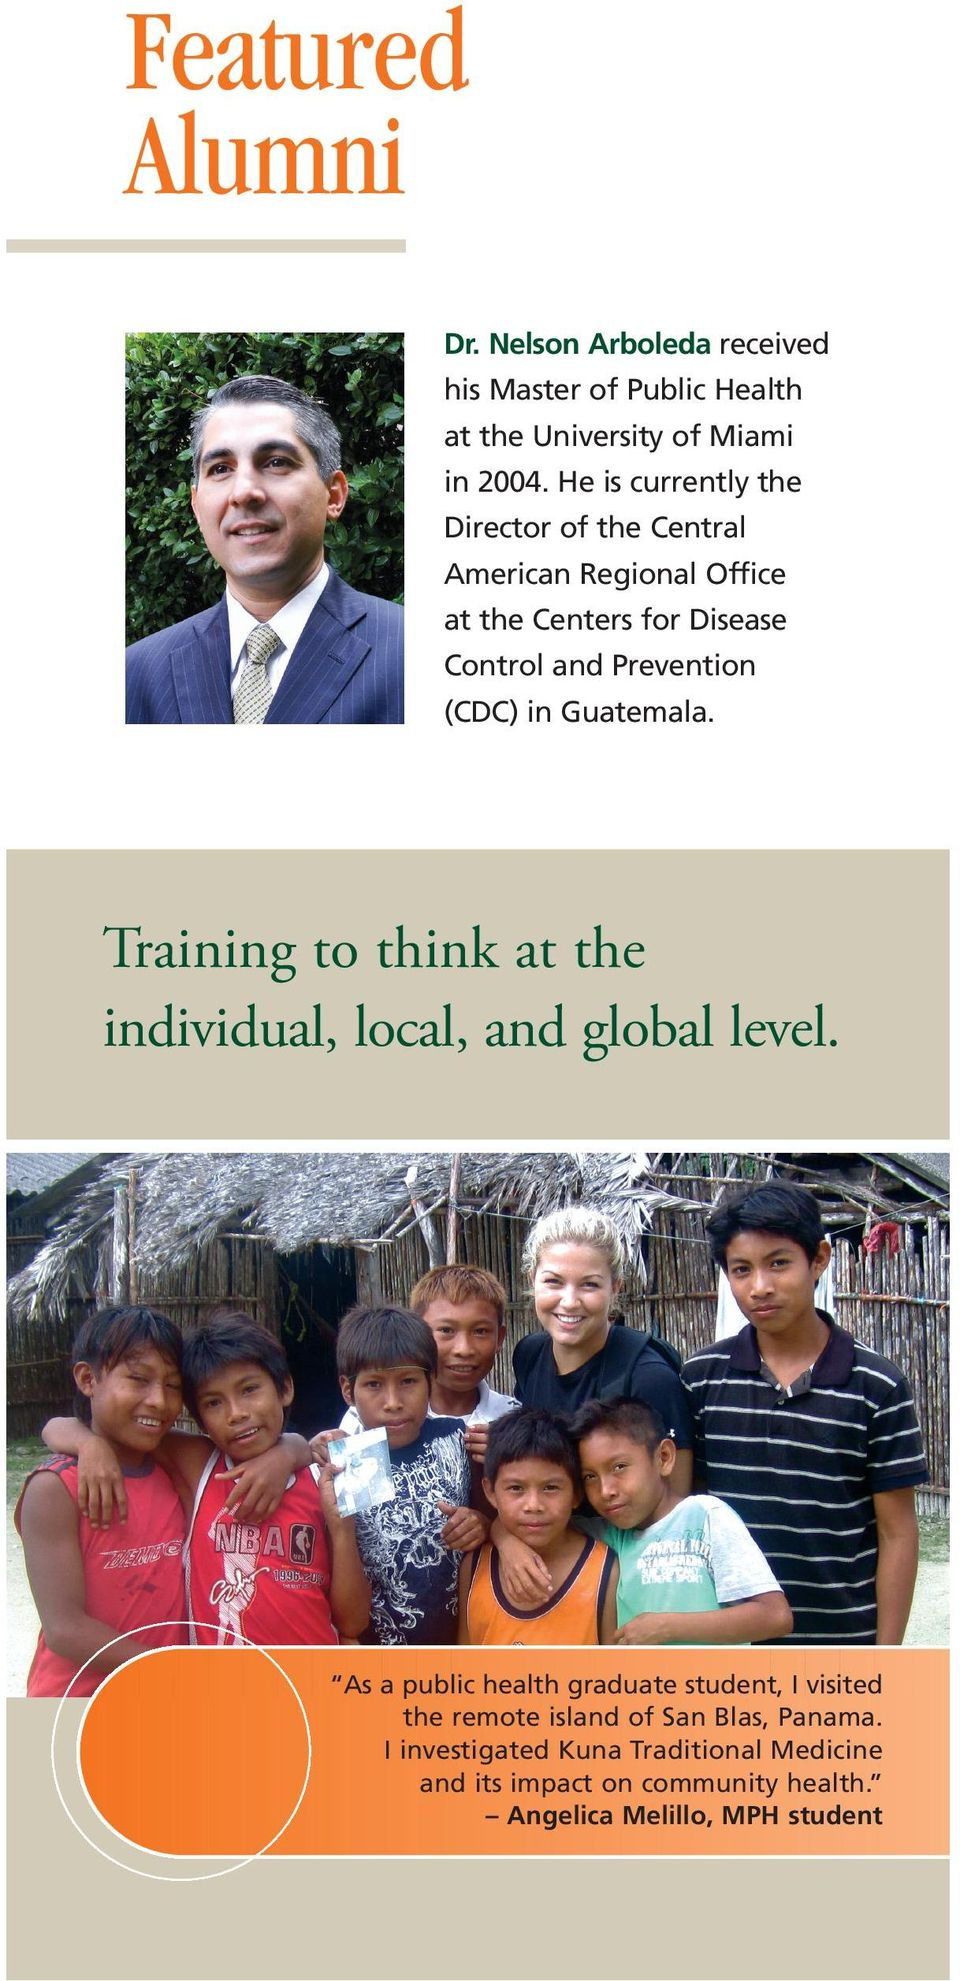 Guatemala. Training to think at the individual, local, and global level.